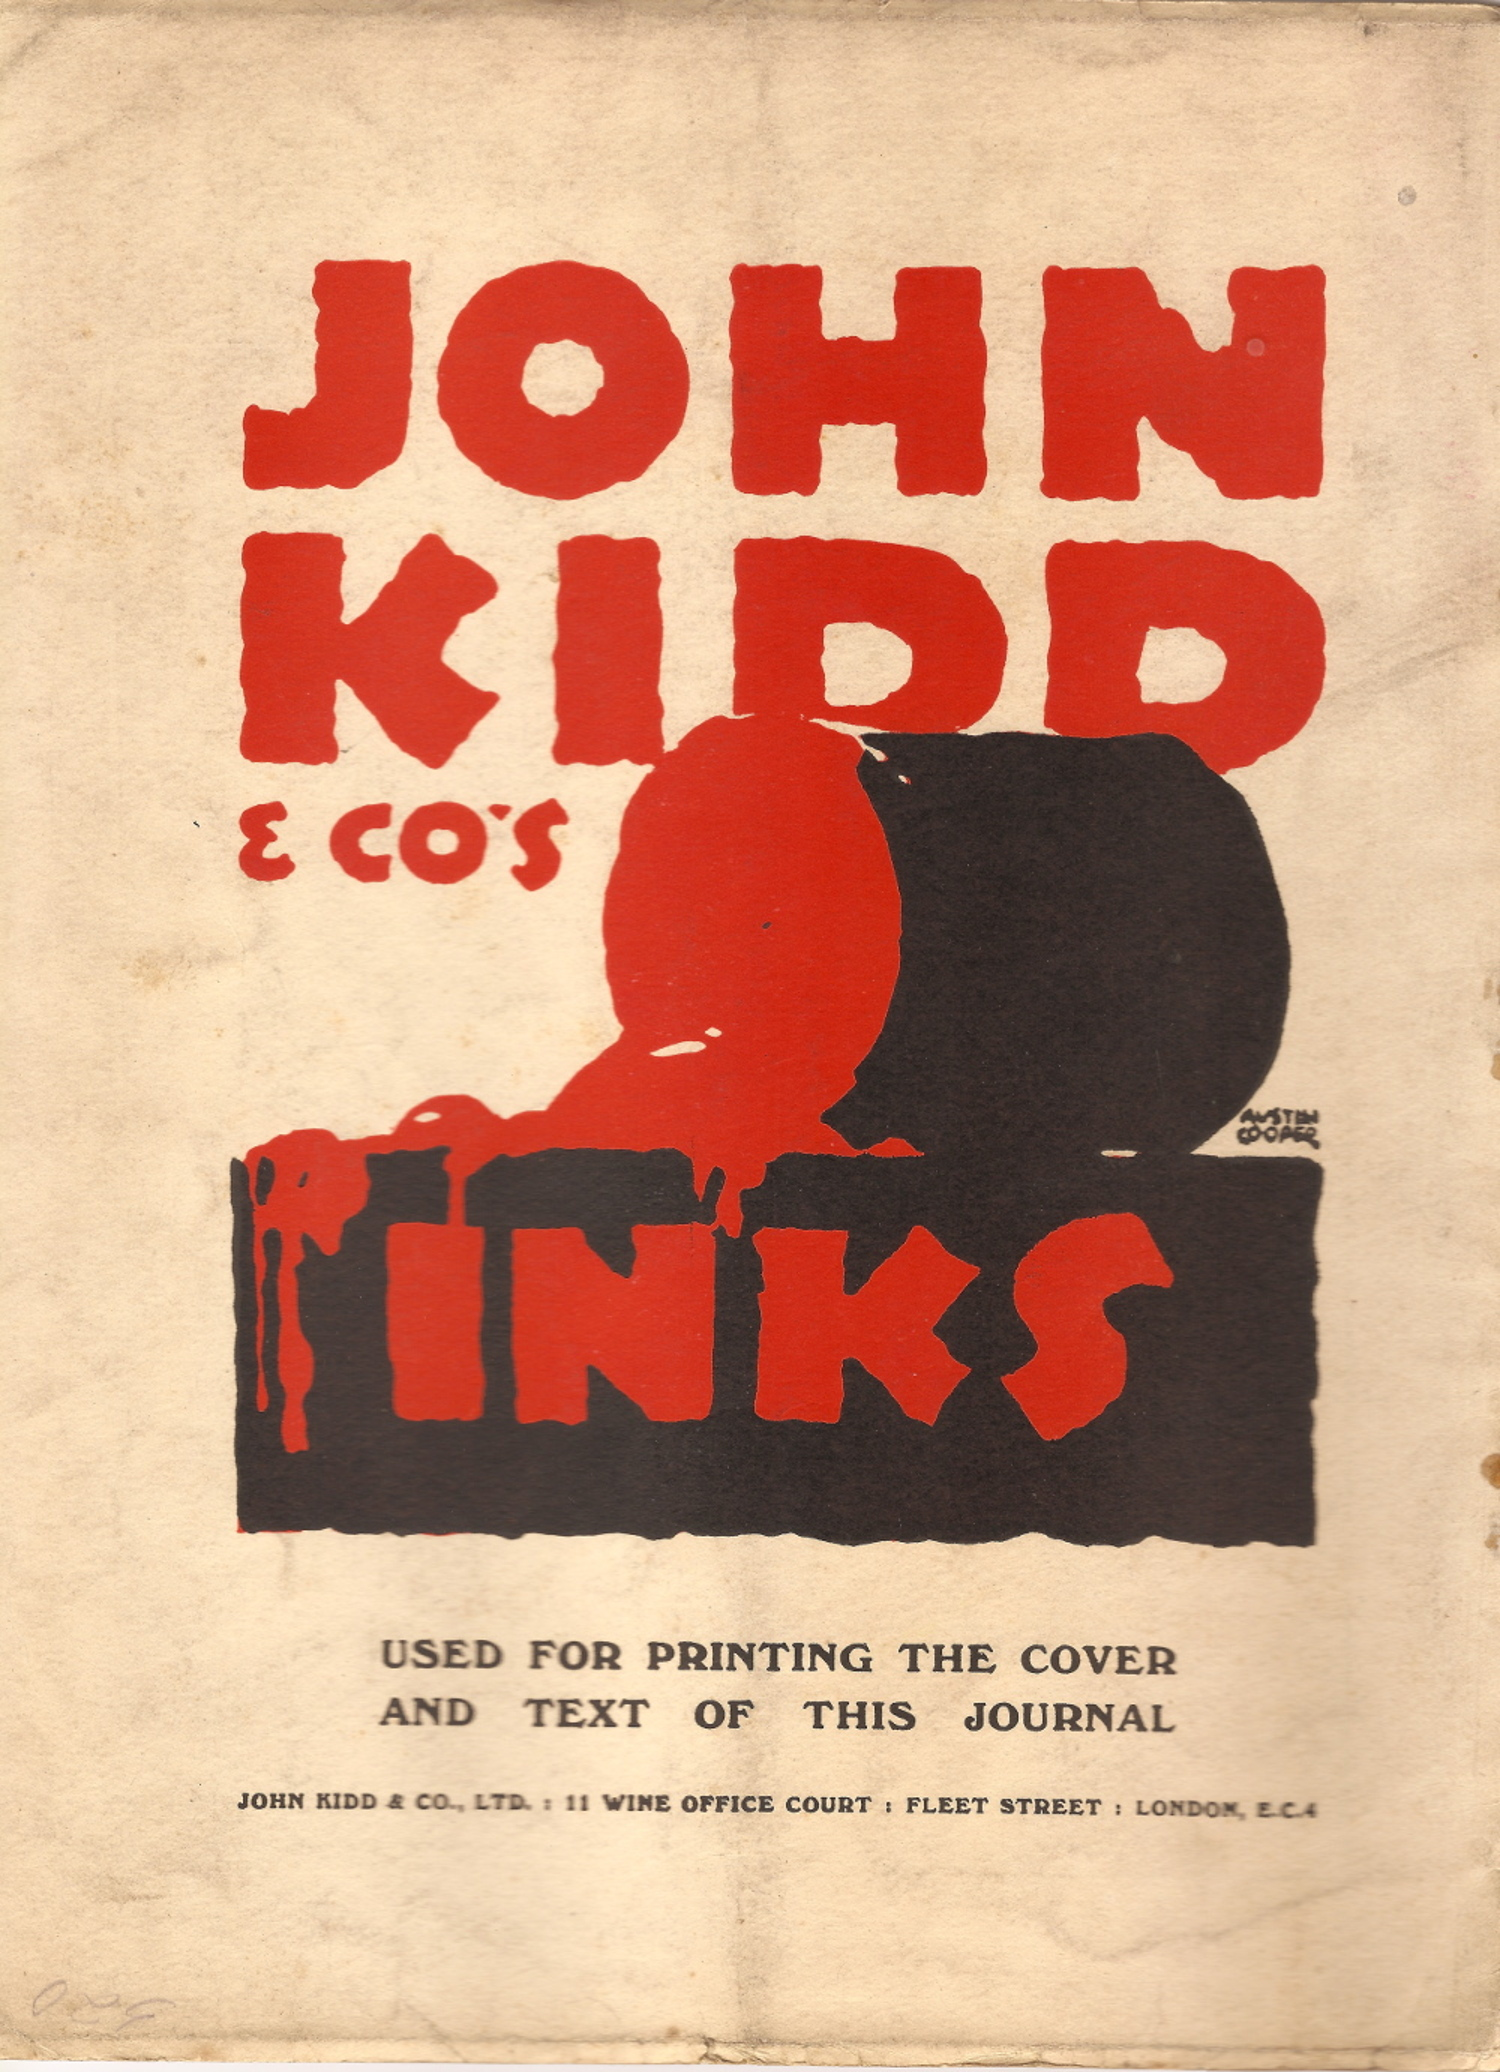 Kidd & Co sample from 'Commercial Art' magazine